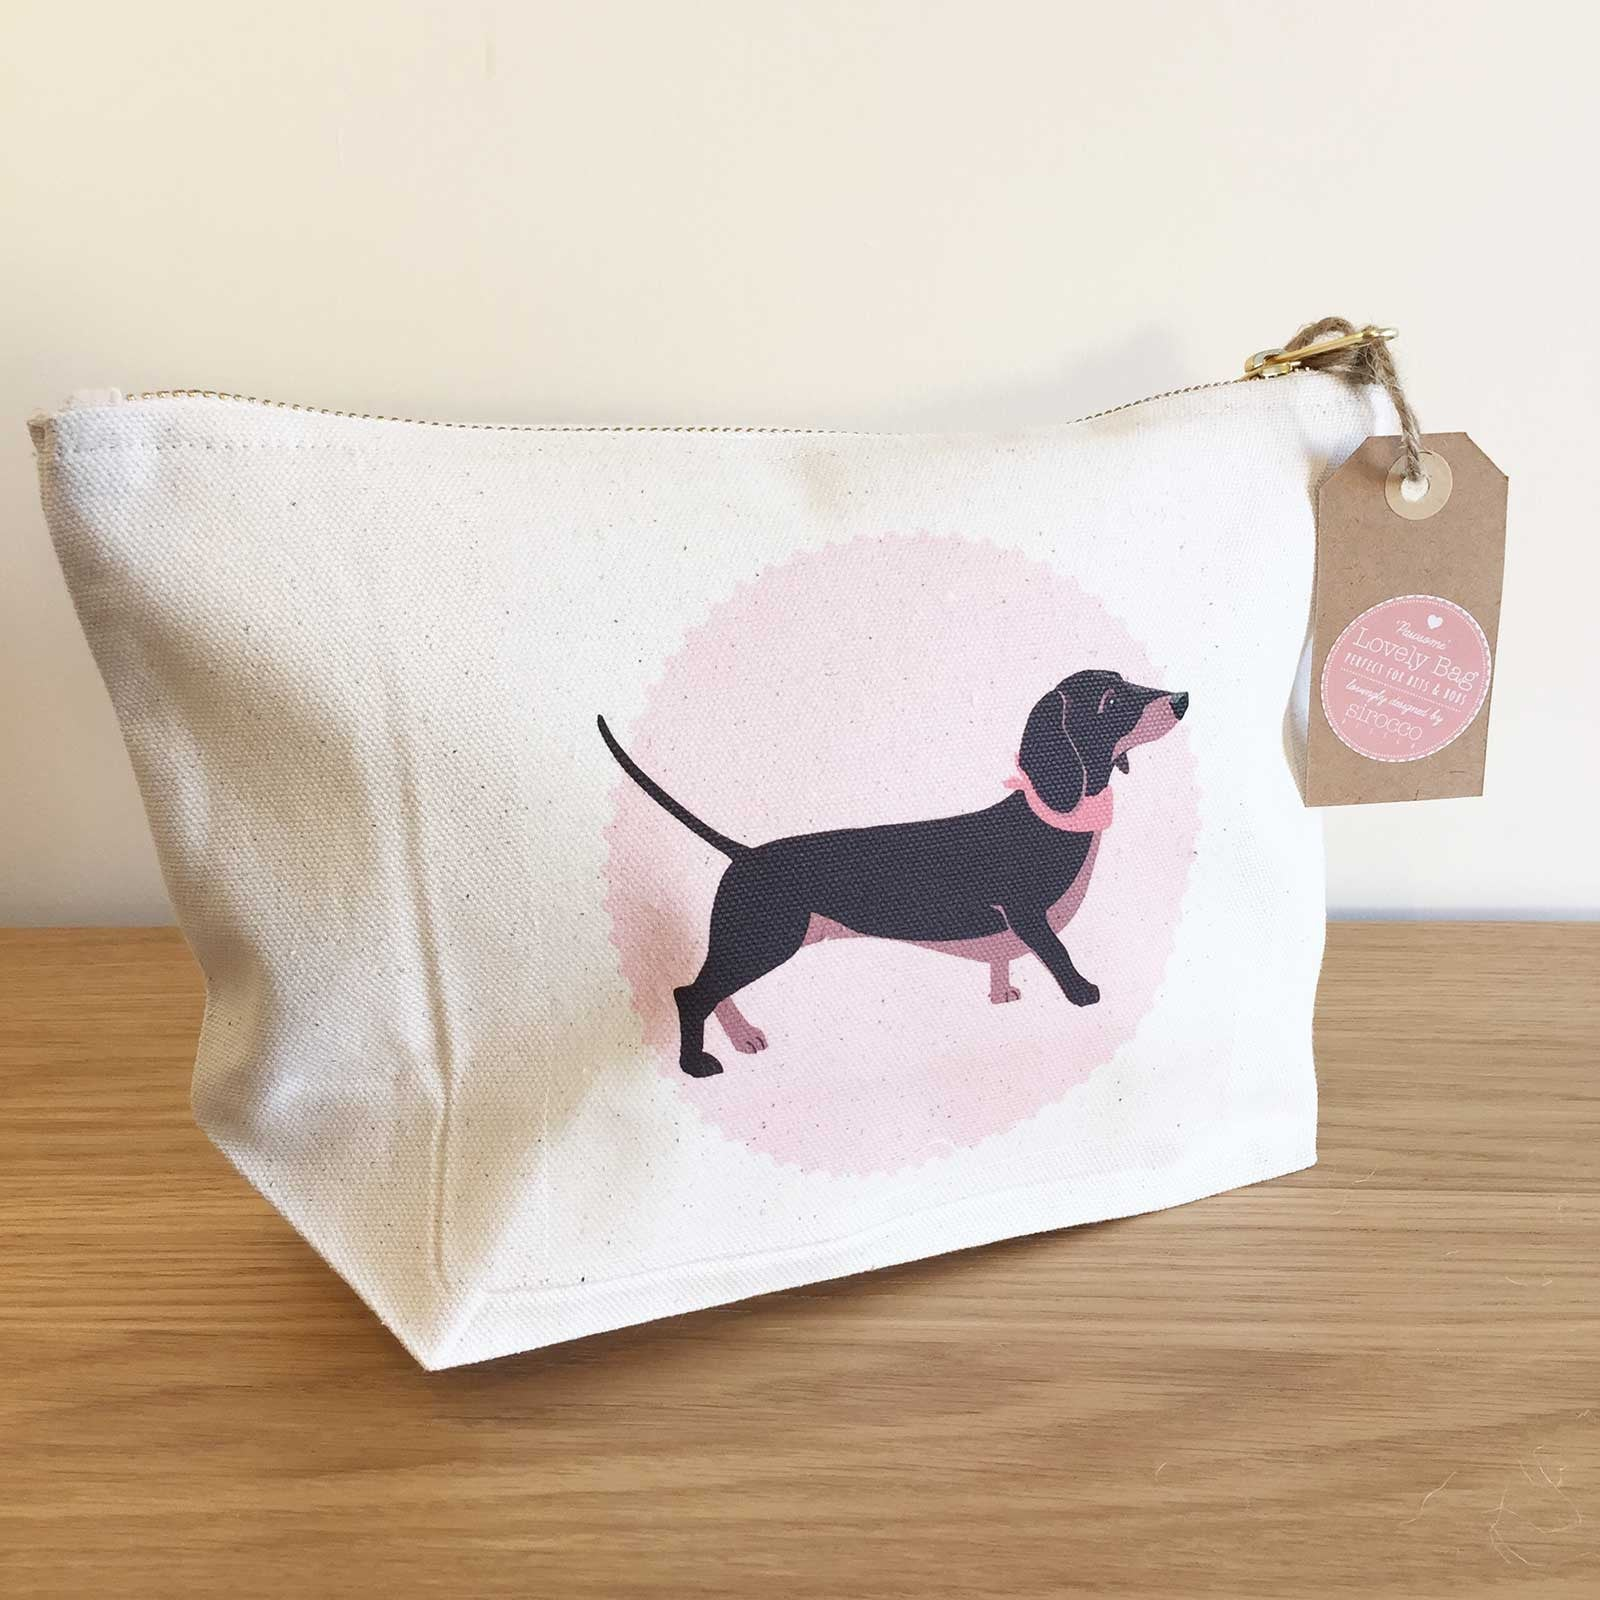 Dachshund Zip Bag